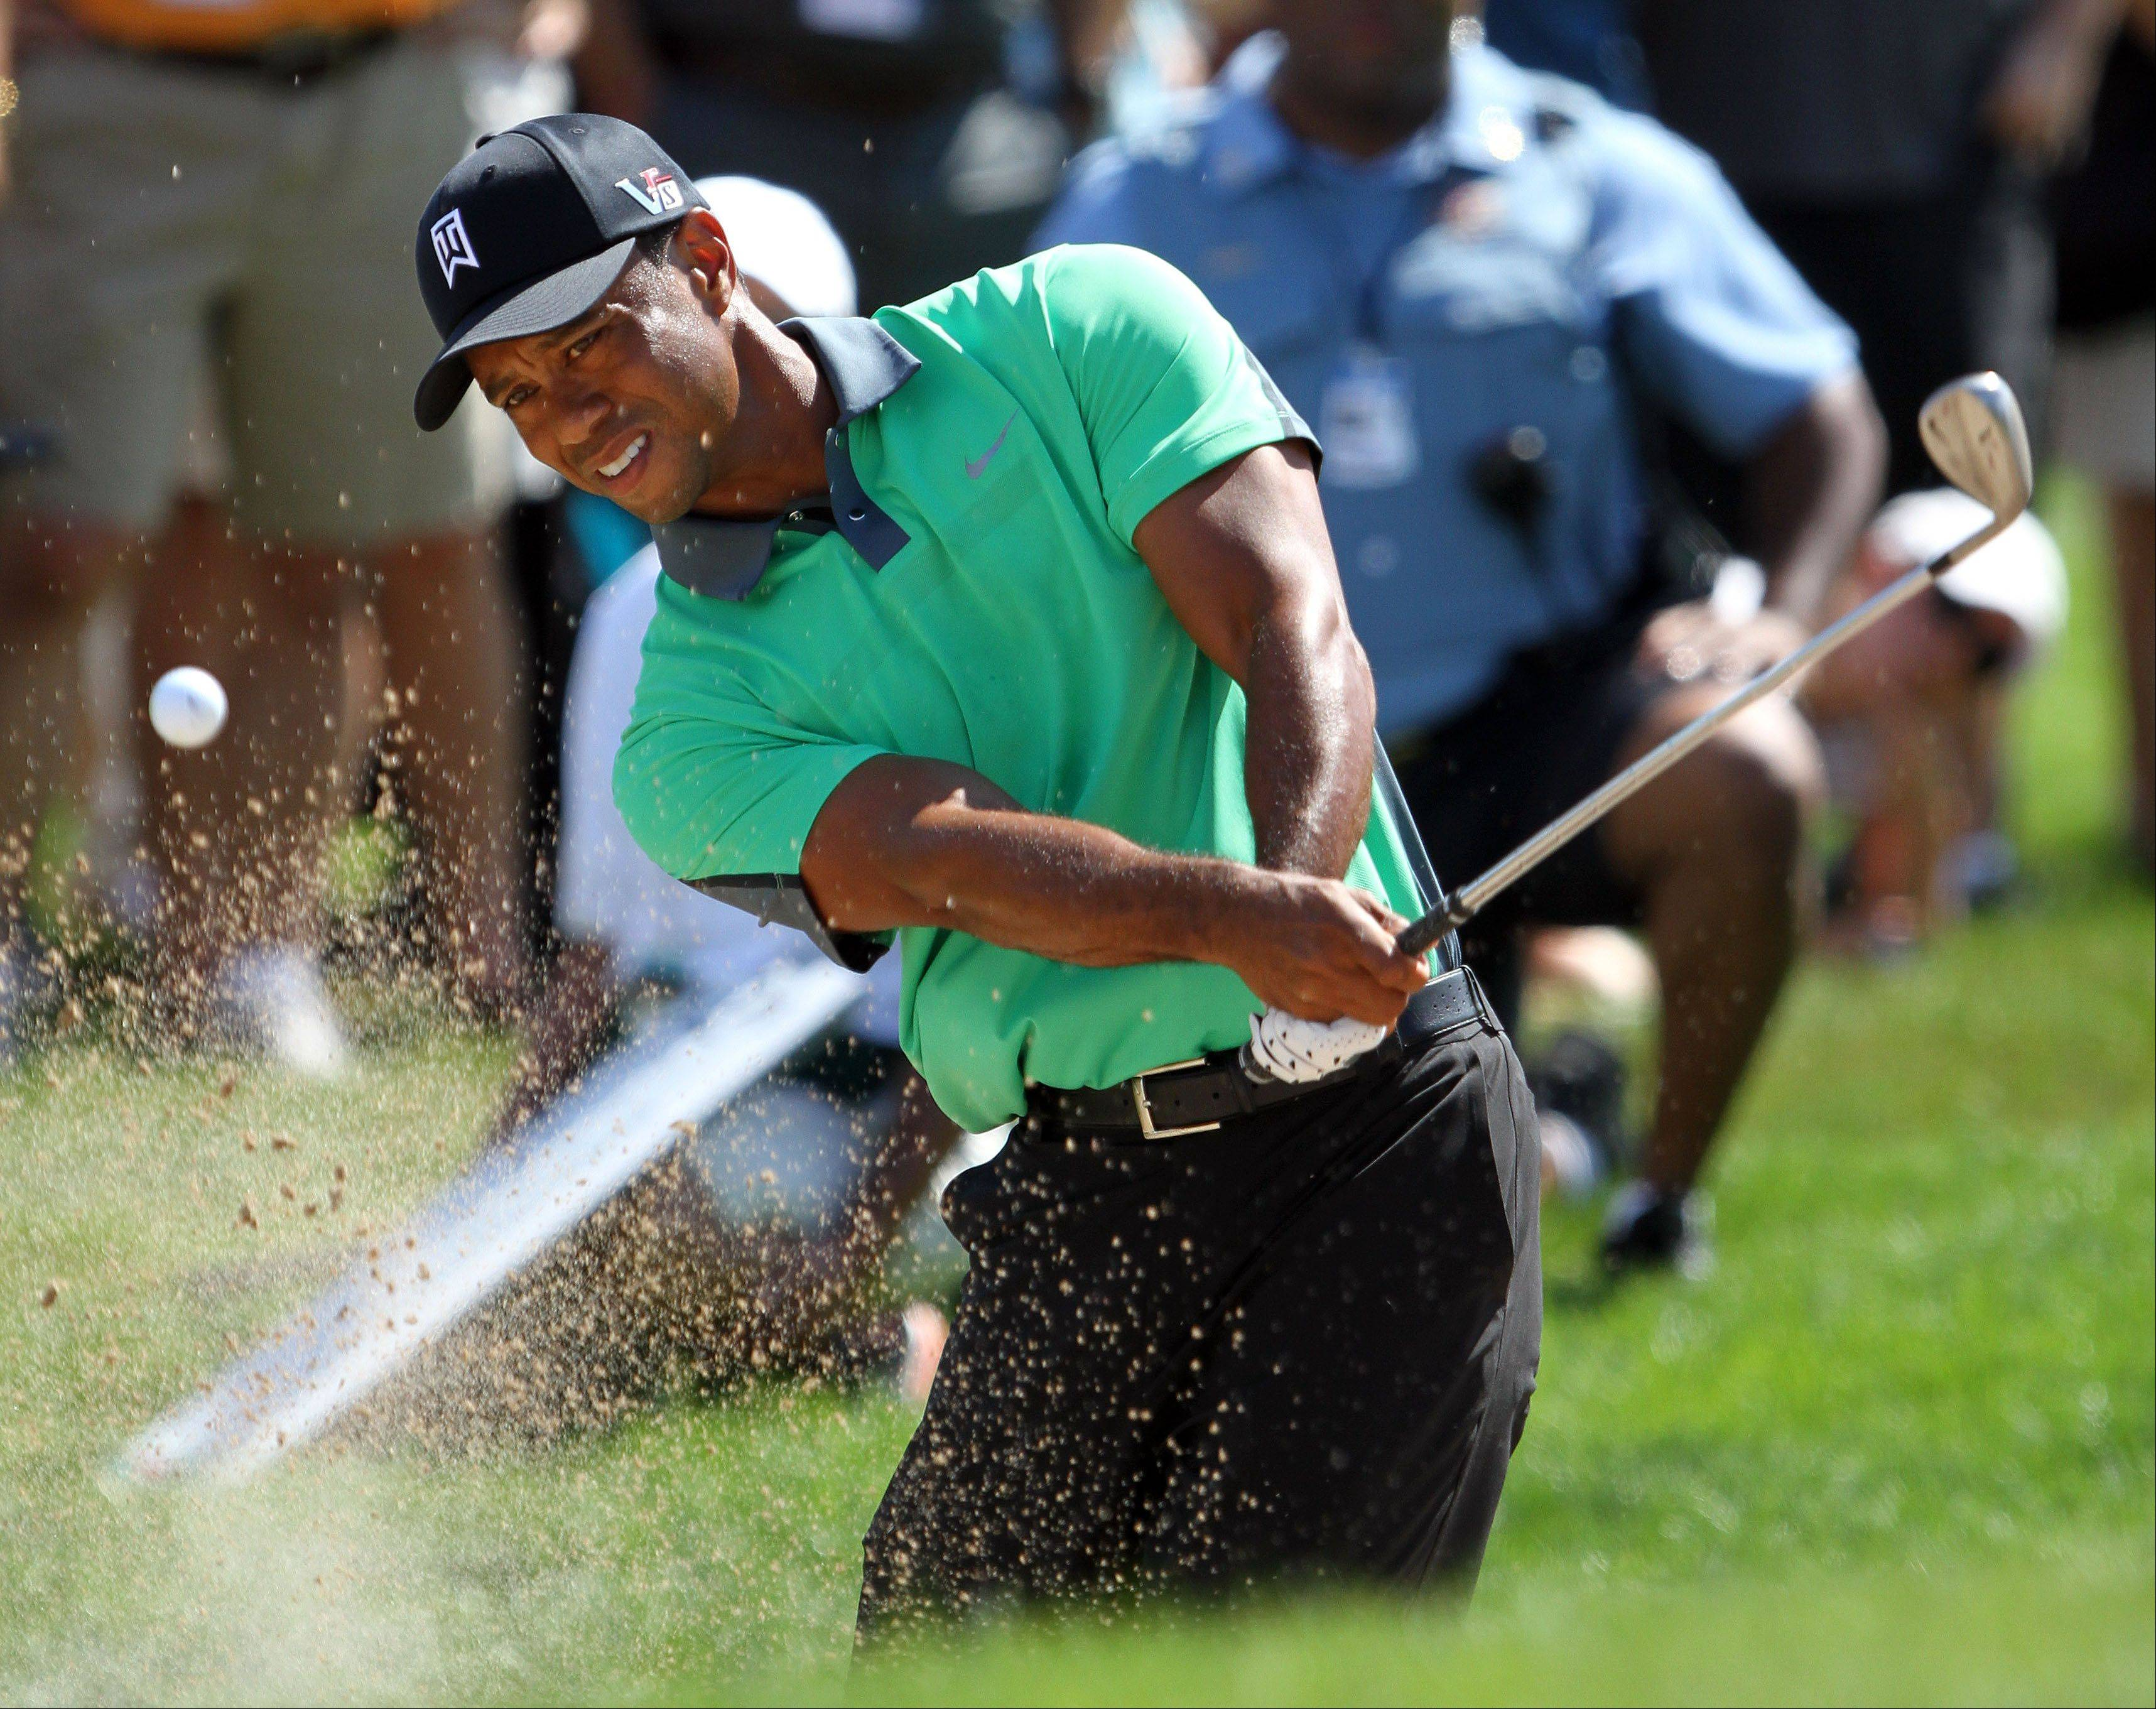 Tiger Woods hits out of the trap on the 13th hole.